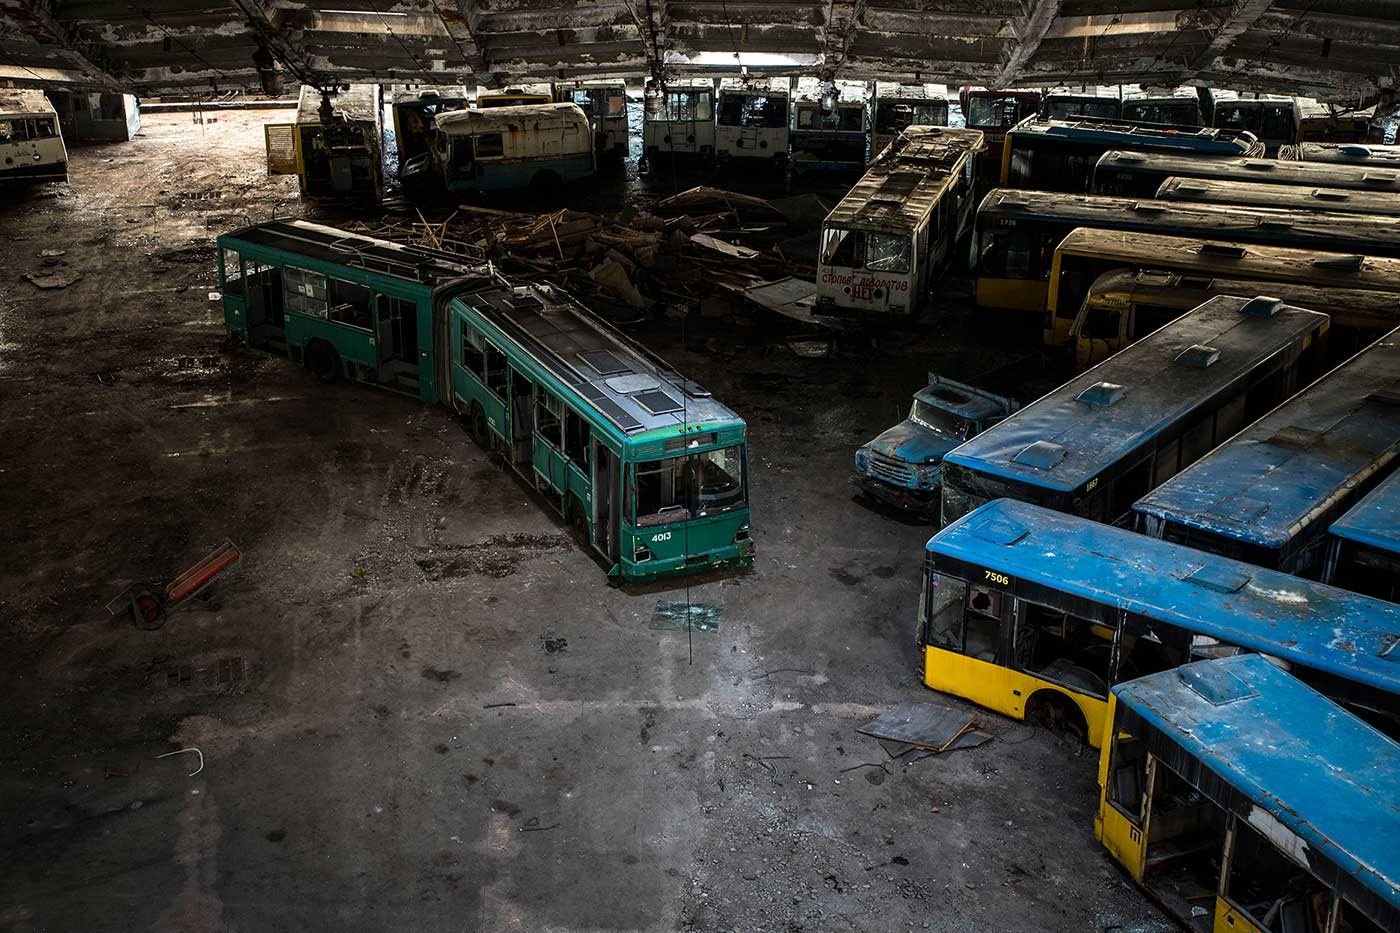 Meanwhile, more vehicles are added to the collection after any accidents and collisions on the roads of Kyiv. Autobus Park №7: the abandoned bus depot in Kyiv, Ukraine.